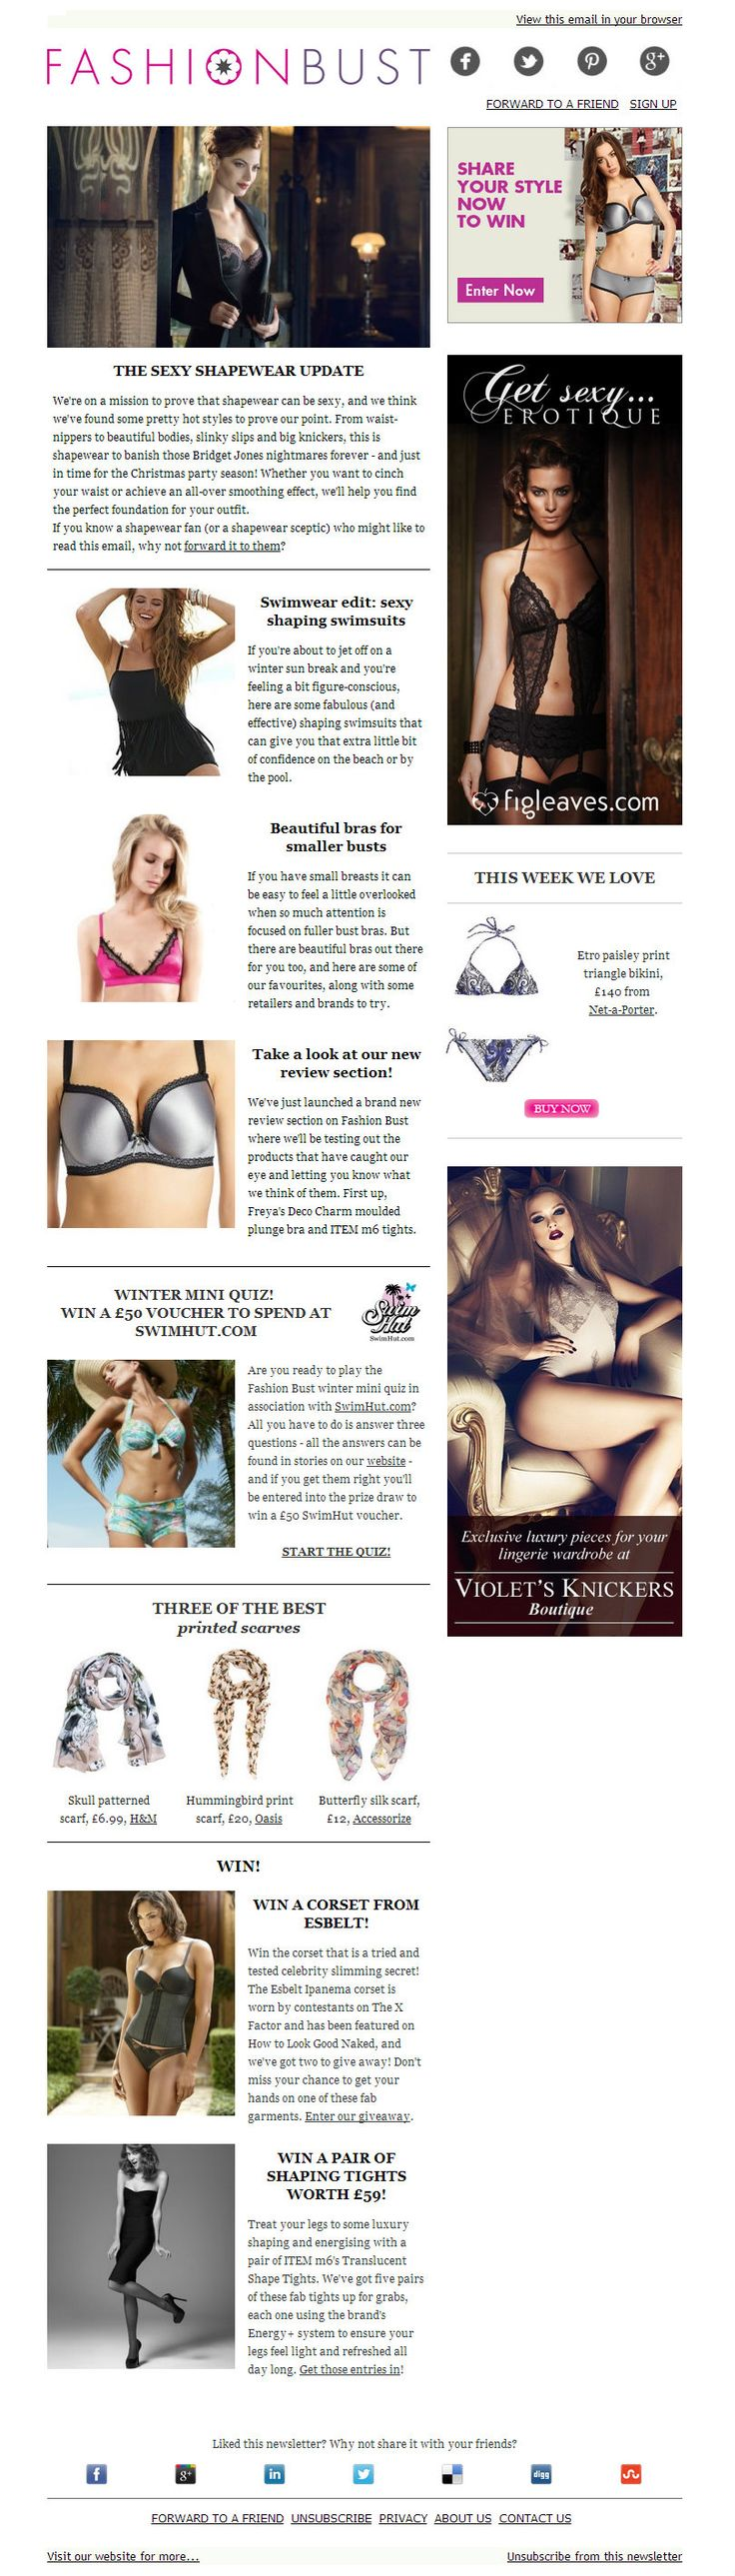 The shapewear issue: sexy shapewear update and fabulous shaping swimsuits to wear on the beach. Plus, we've got a feature on beautiful bras for smaller busts and the launch of our review section! Plus amazing giveaways http://fashionbust-news.com/1ORR-1YGXZ-D29CBN0395/cr.aspx